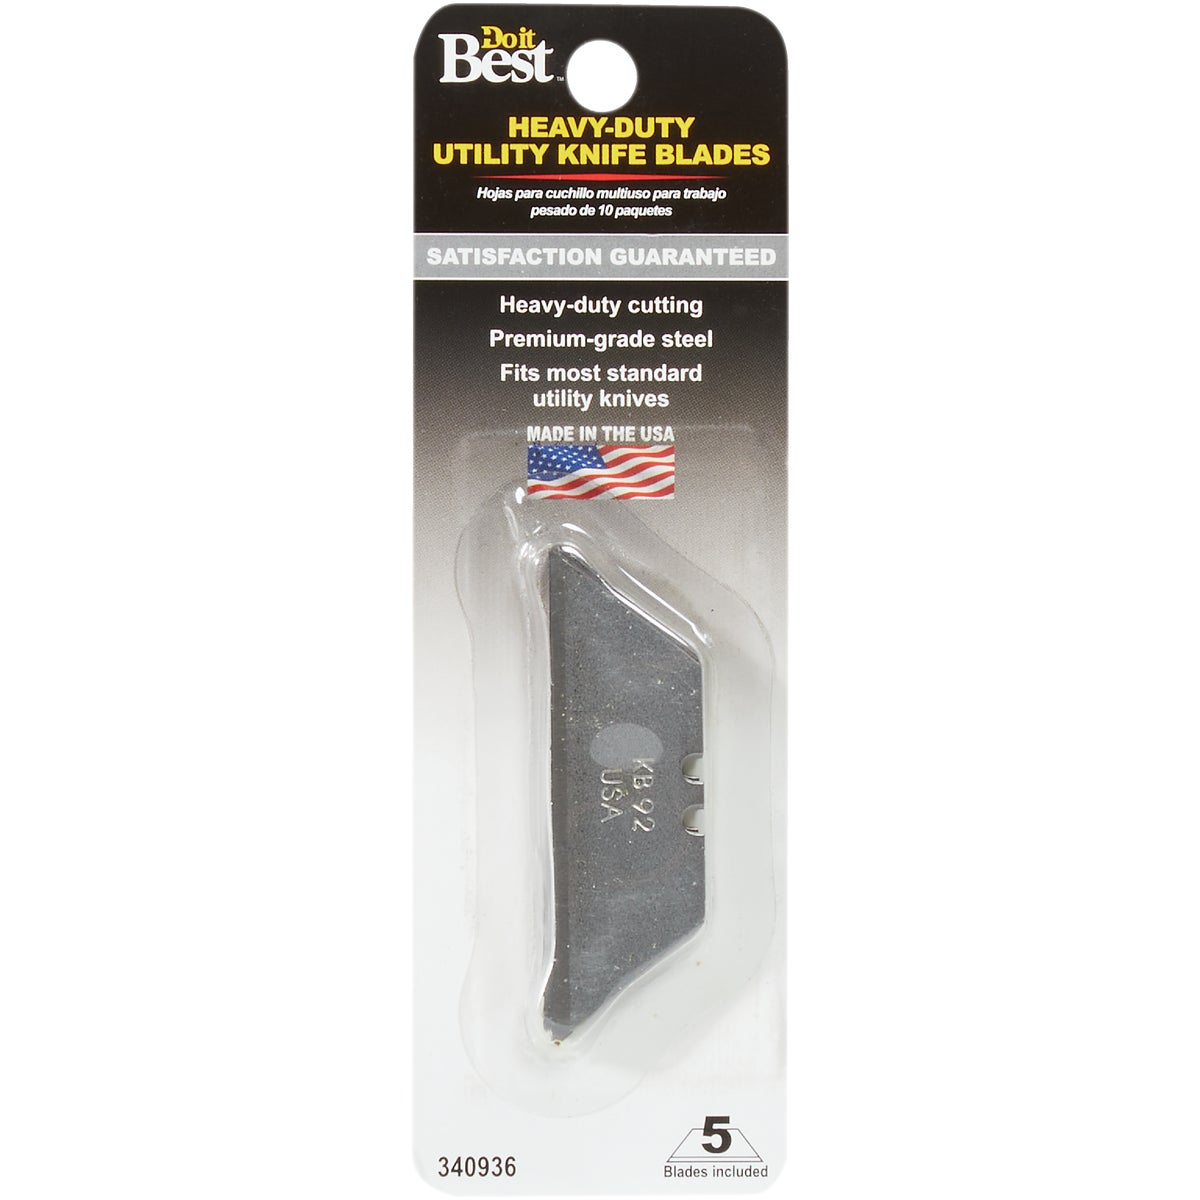 10PK UTILITY BLADES - 340936 by Do it Best